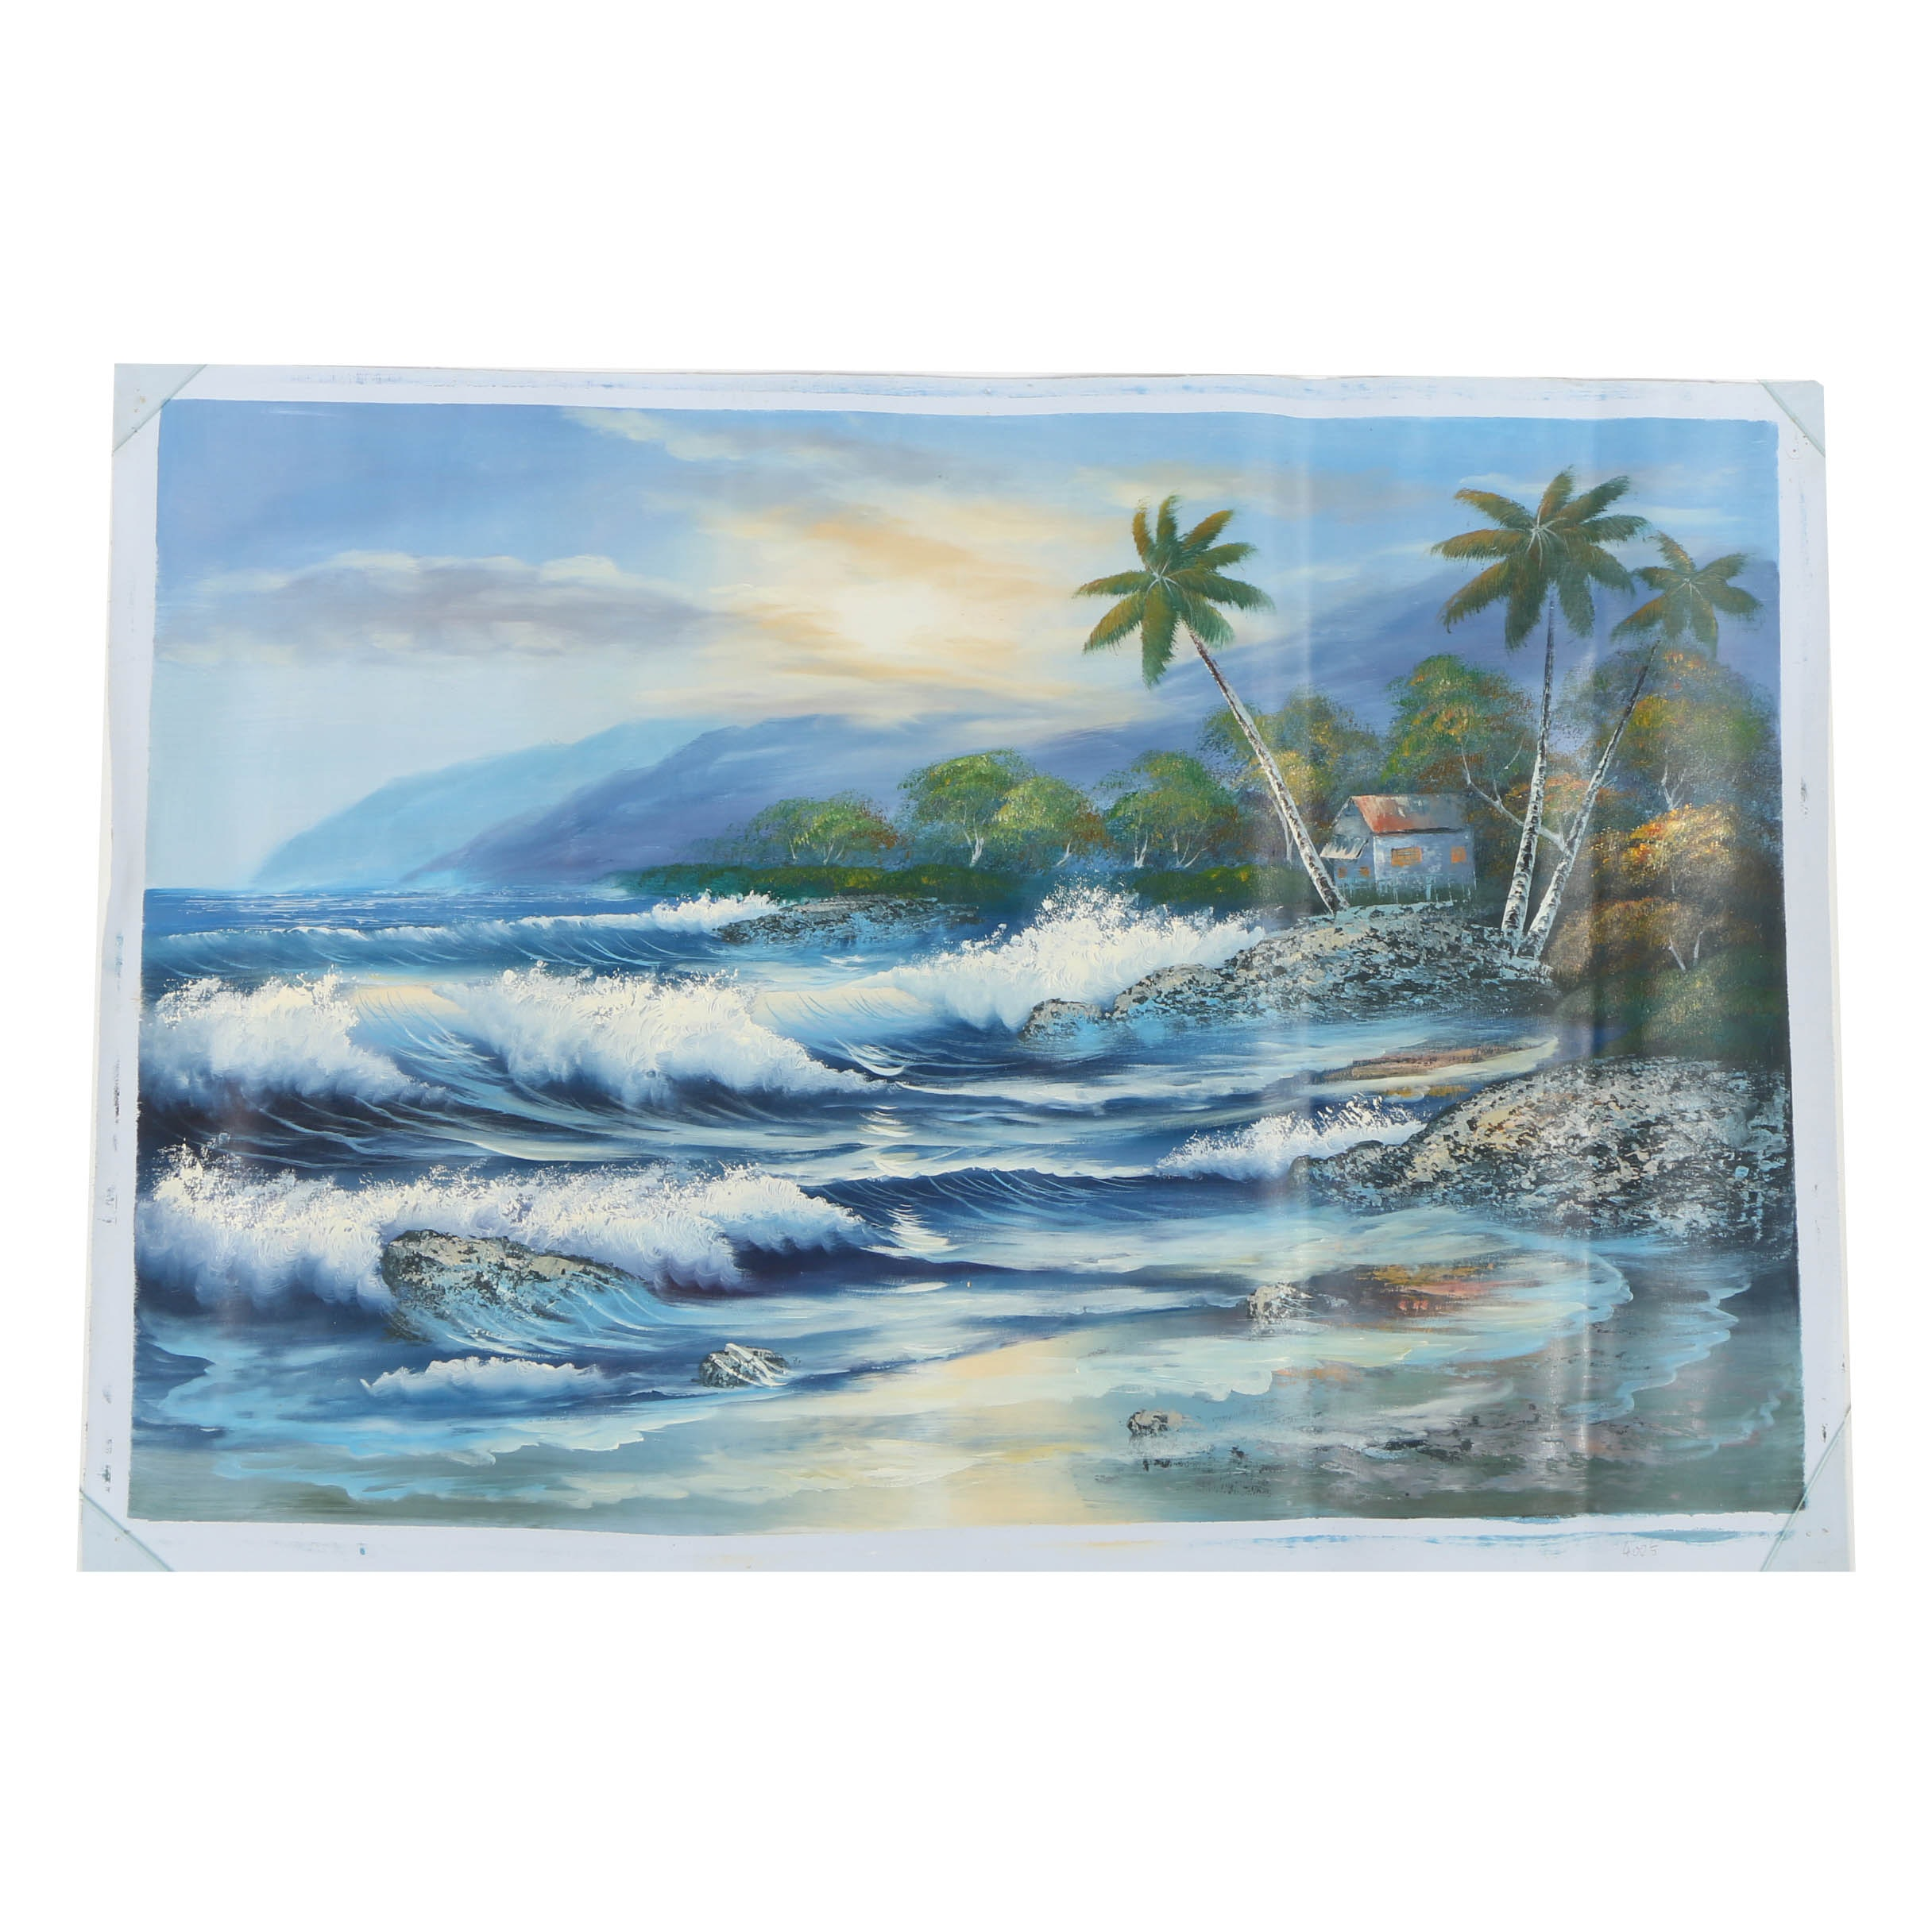 Oil Painting of a Tropical Landscape